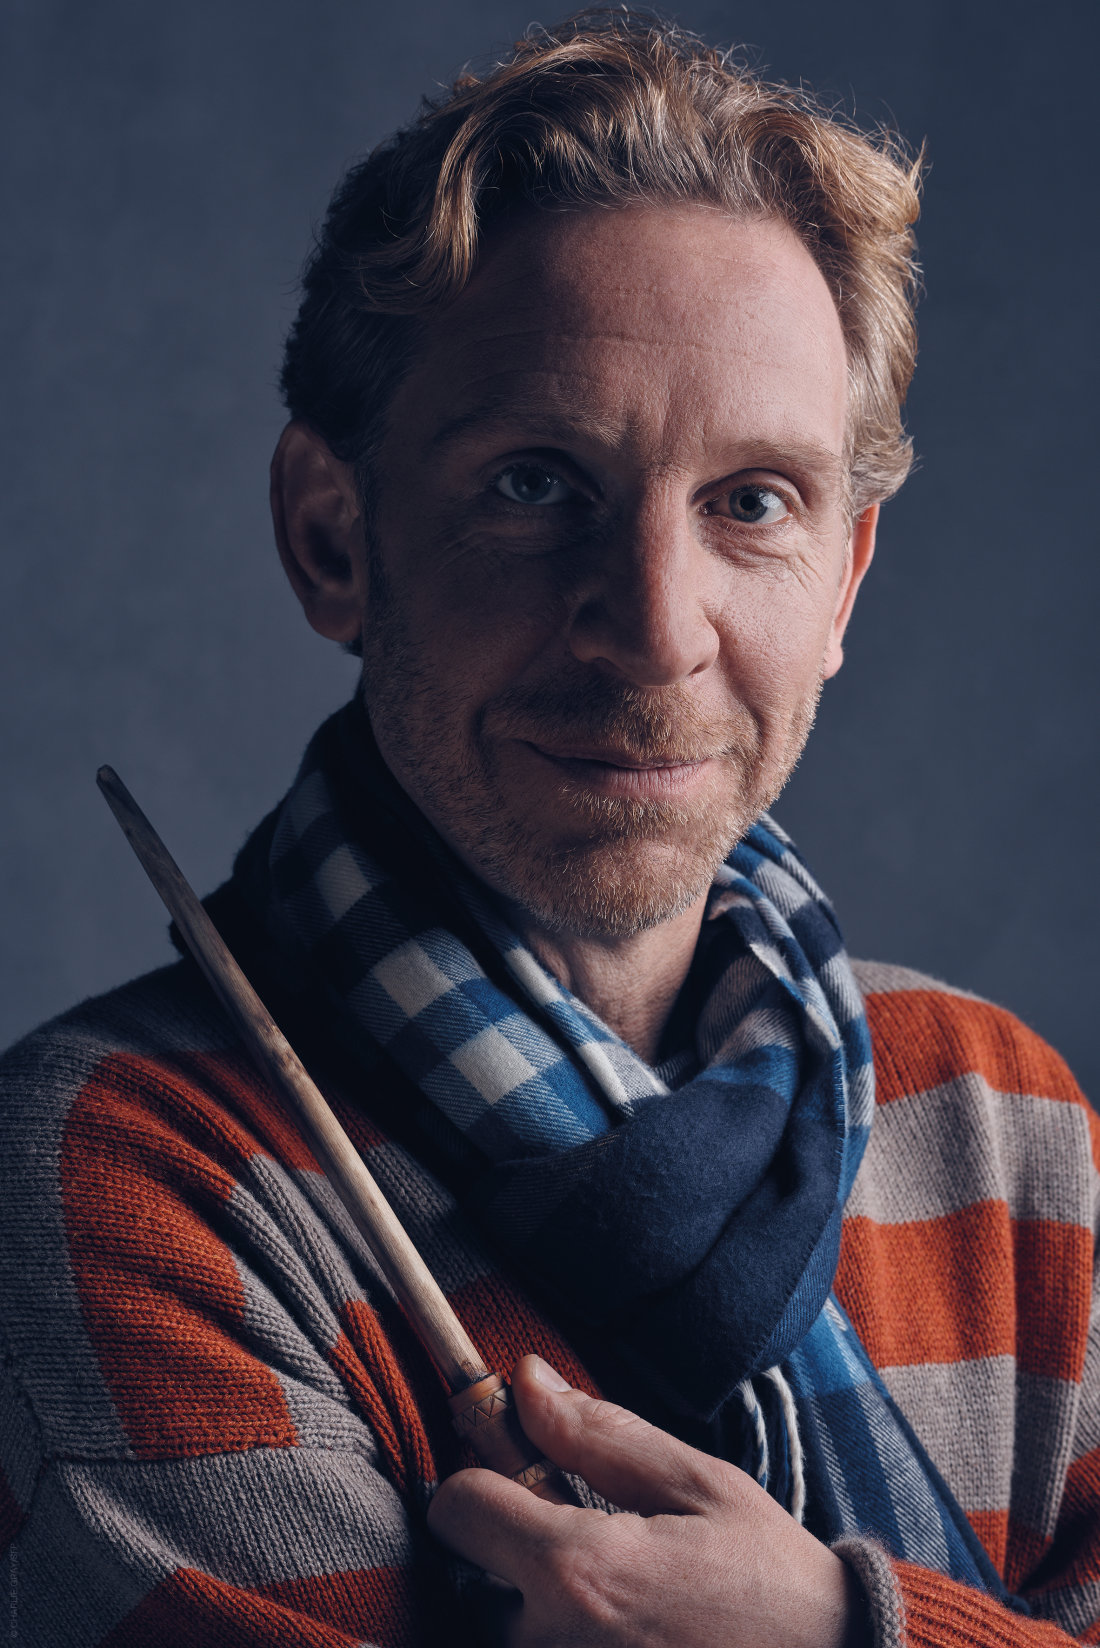 Harry Potter and the Cursed Child: Paul Thornley interpreta Ron Weasley